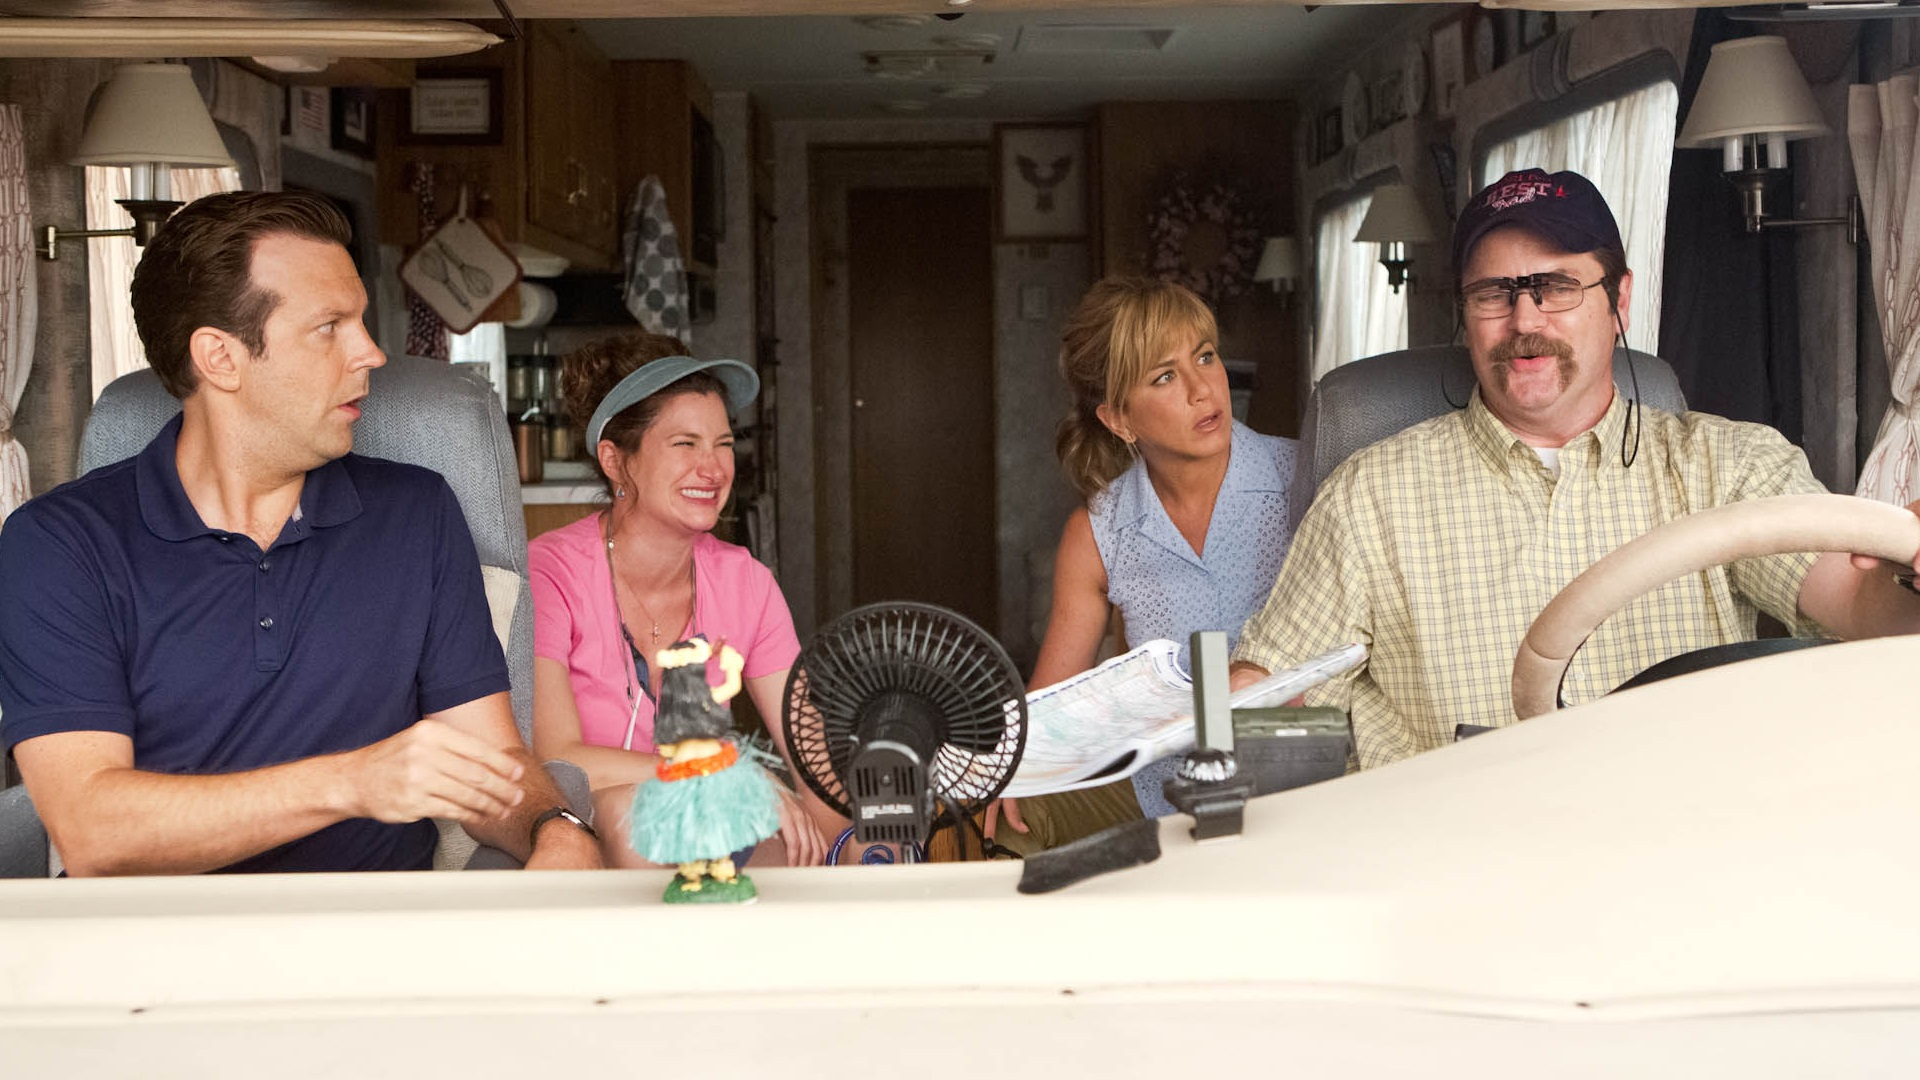 """We're the Millers"" (Jason Sudekis, Jennifer Aniston)"